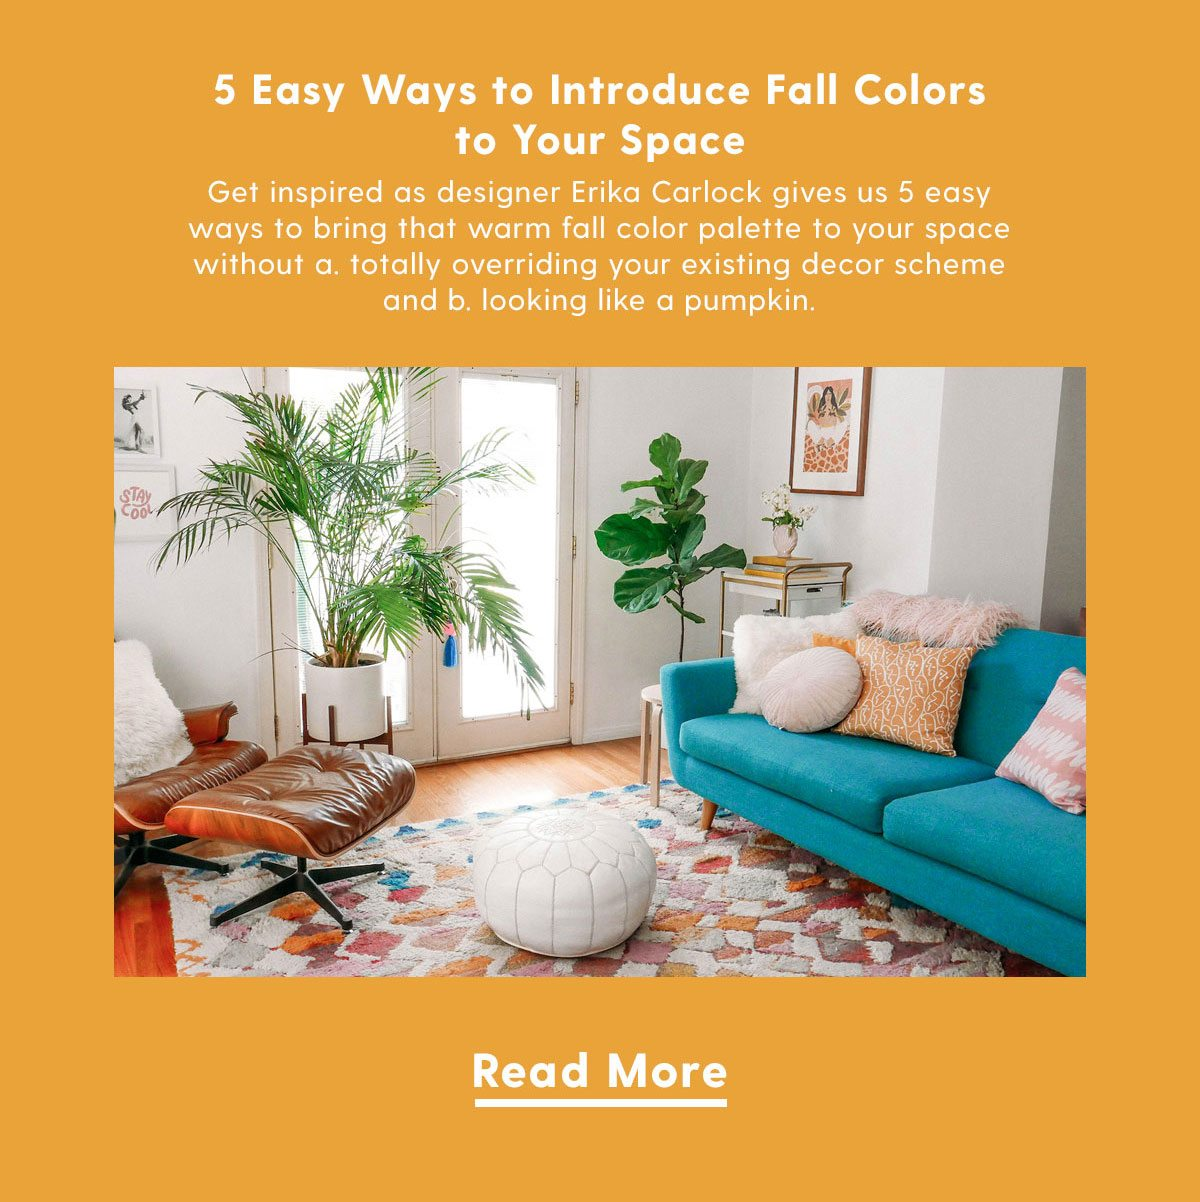 5 Easy Ways to Introduce Fall Colors to Your Space | Get inspired as designer Erika Carlock gives us 5 easy ways to bring that warm fall color palette to your space without a. totally overriding your existing decor scheme and b. looking like a pumpkin.